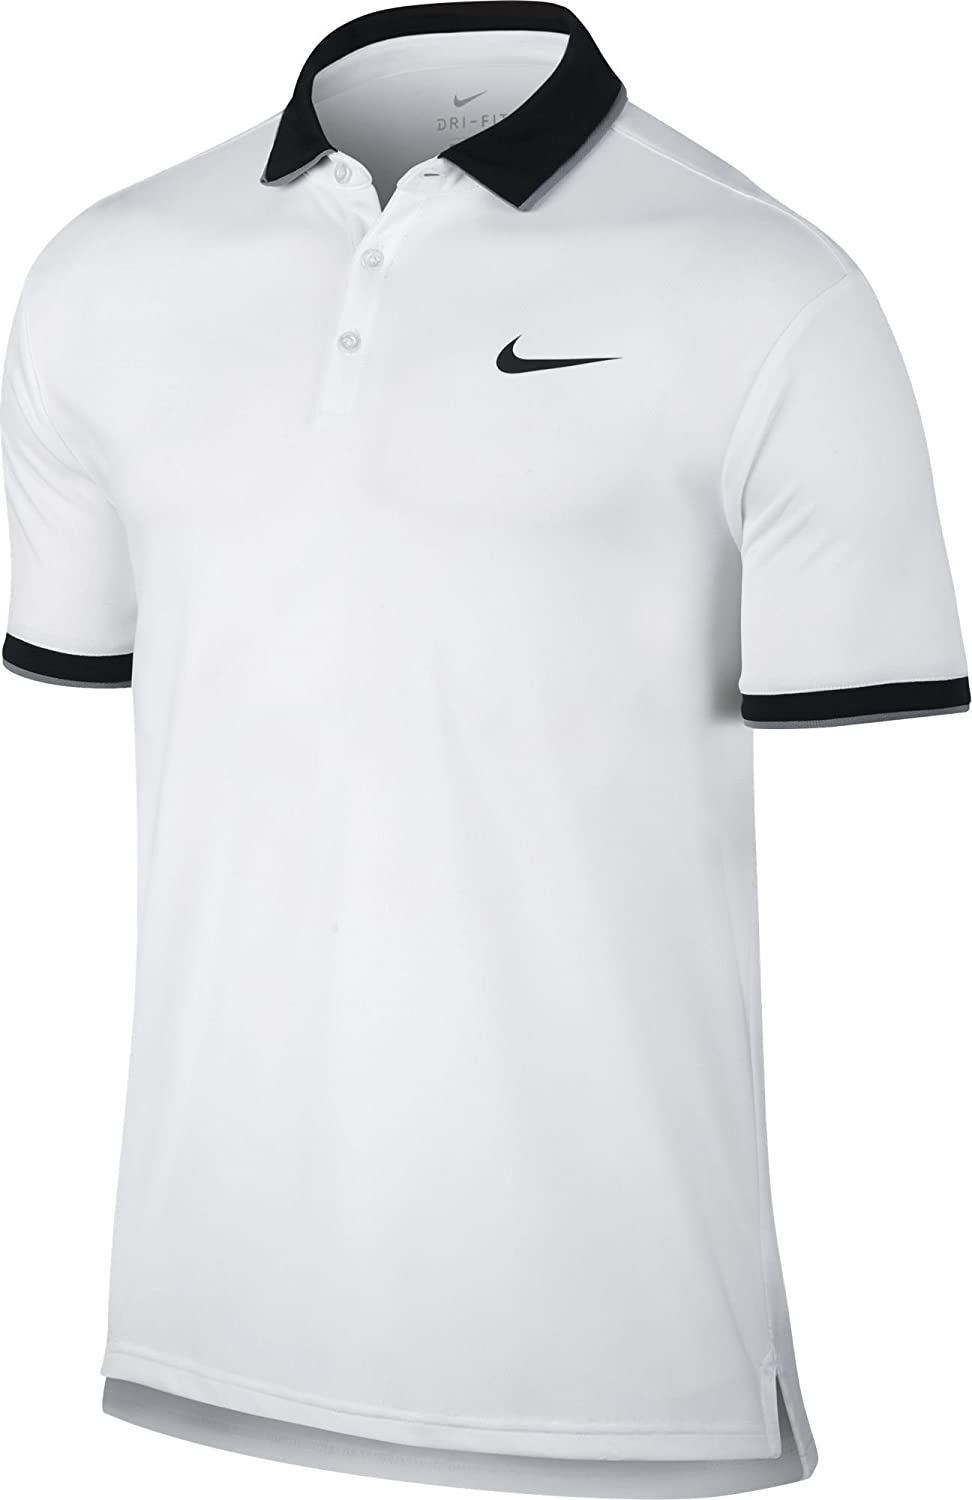 NIKE Men's Dry Team Men's Tennis Polo